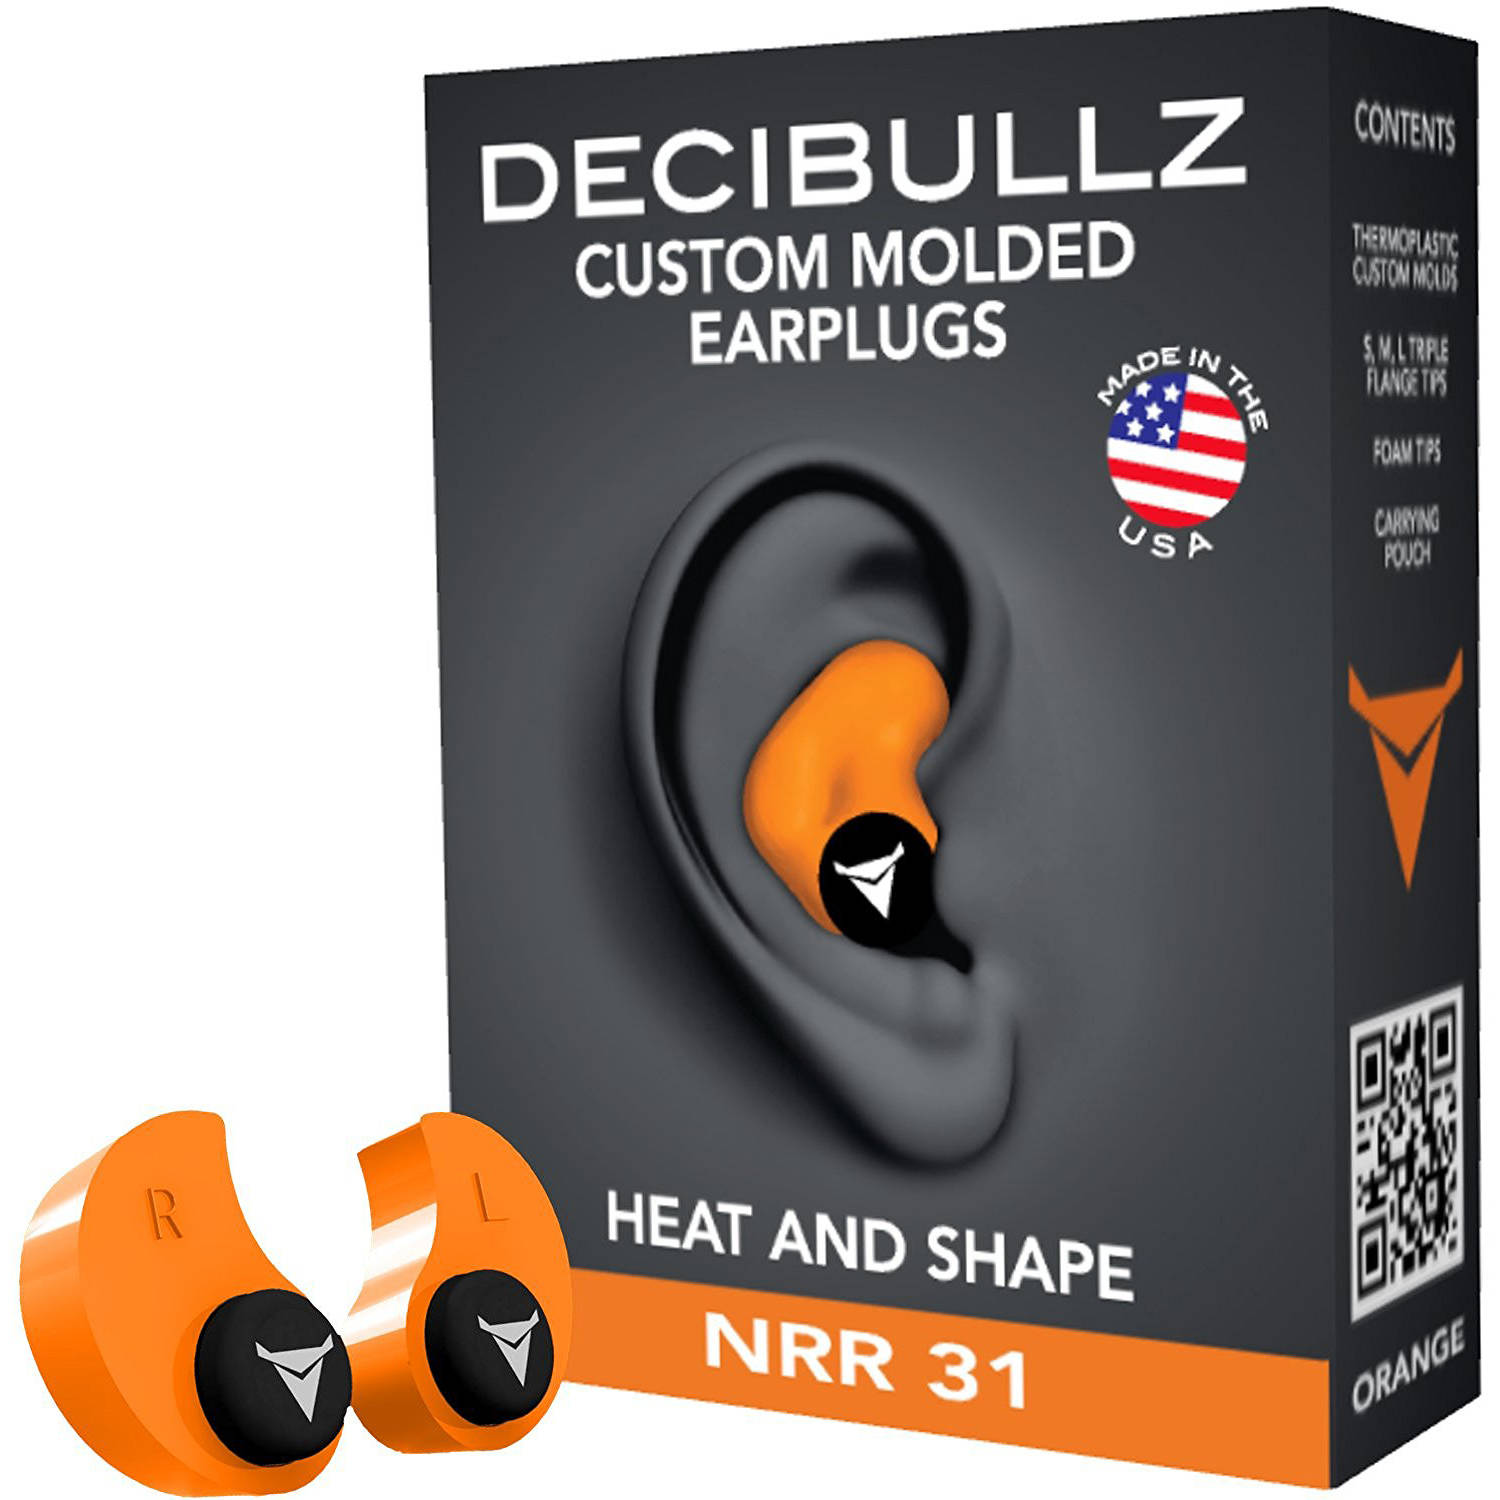 Decibullz Custom Molded Earplugs